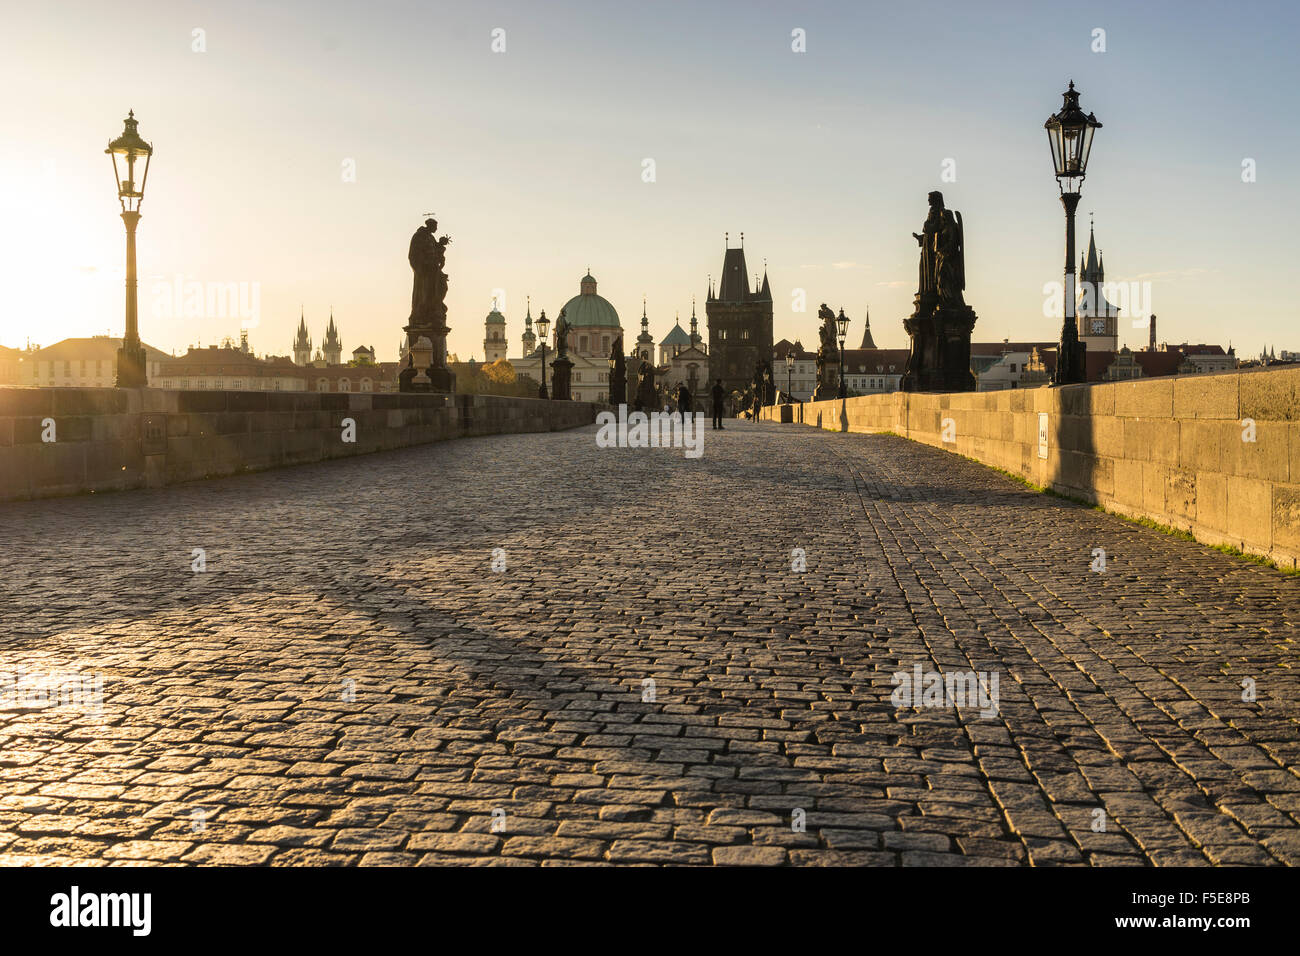 Sunrise on Charles Bridge, UNESCO World Heritage Site, Prague, Czech Republic, Europe - Stock Image